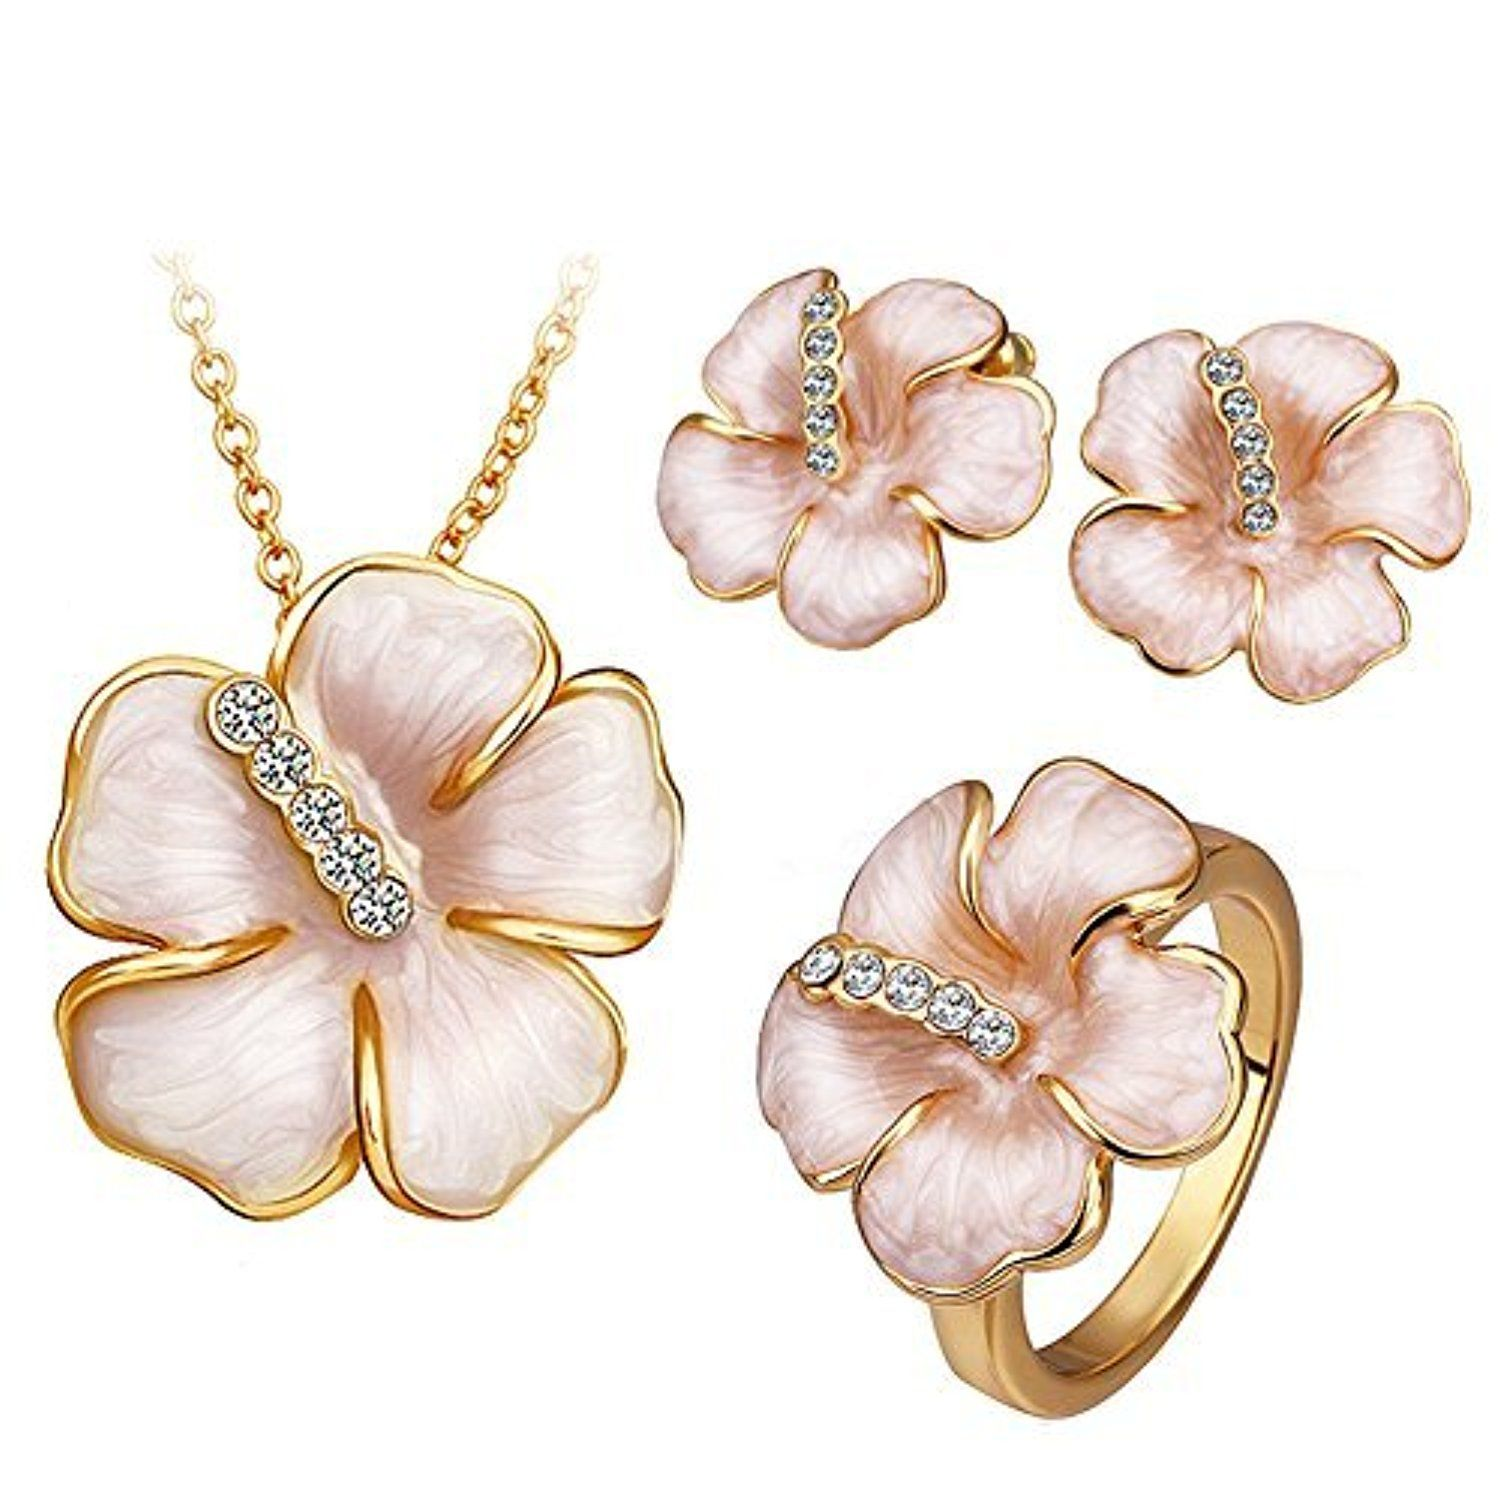 Wedding gifts k gold plated fashion jewelry sets ring necklace